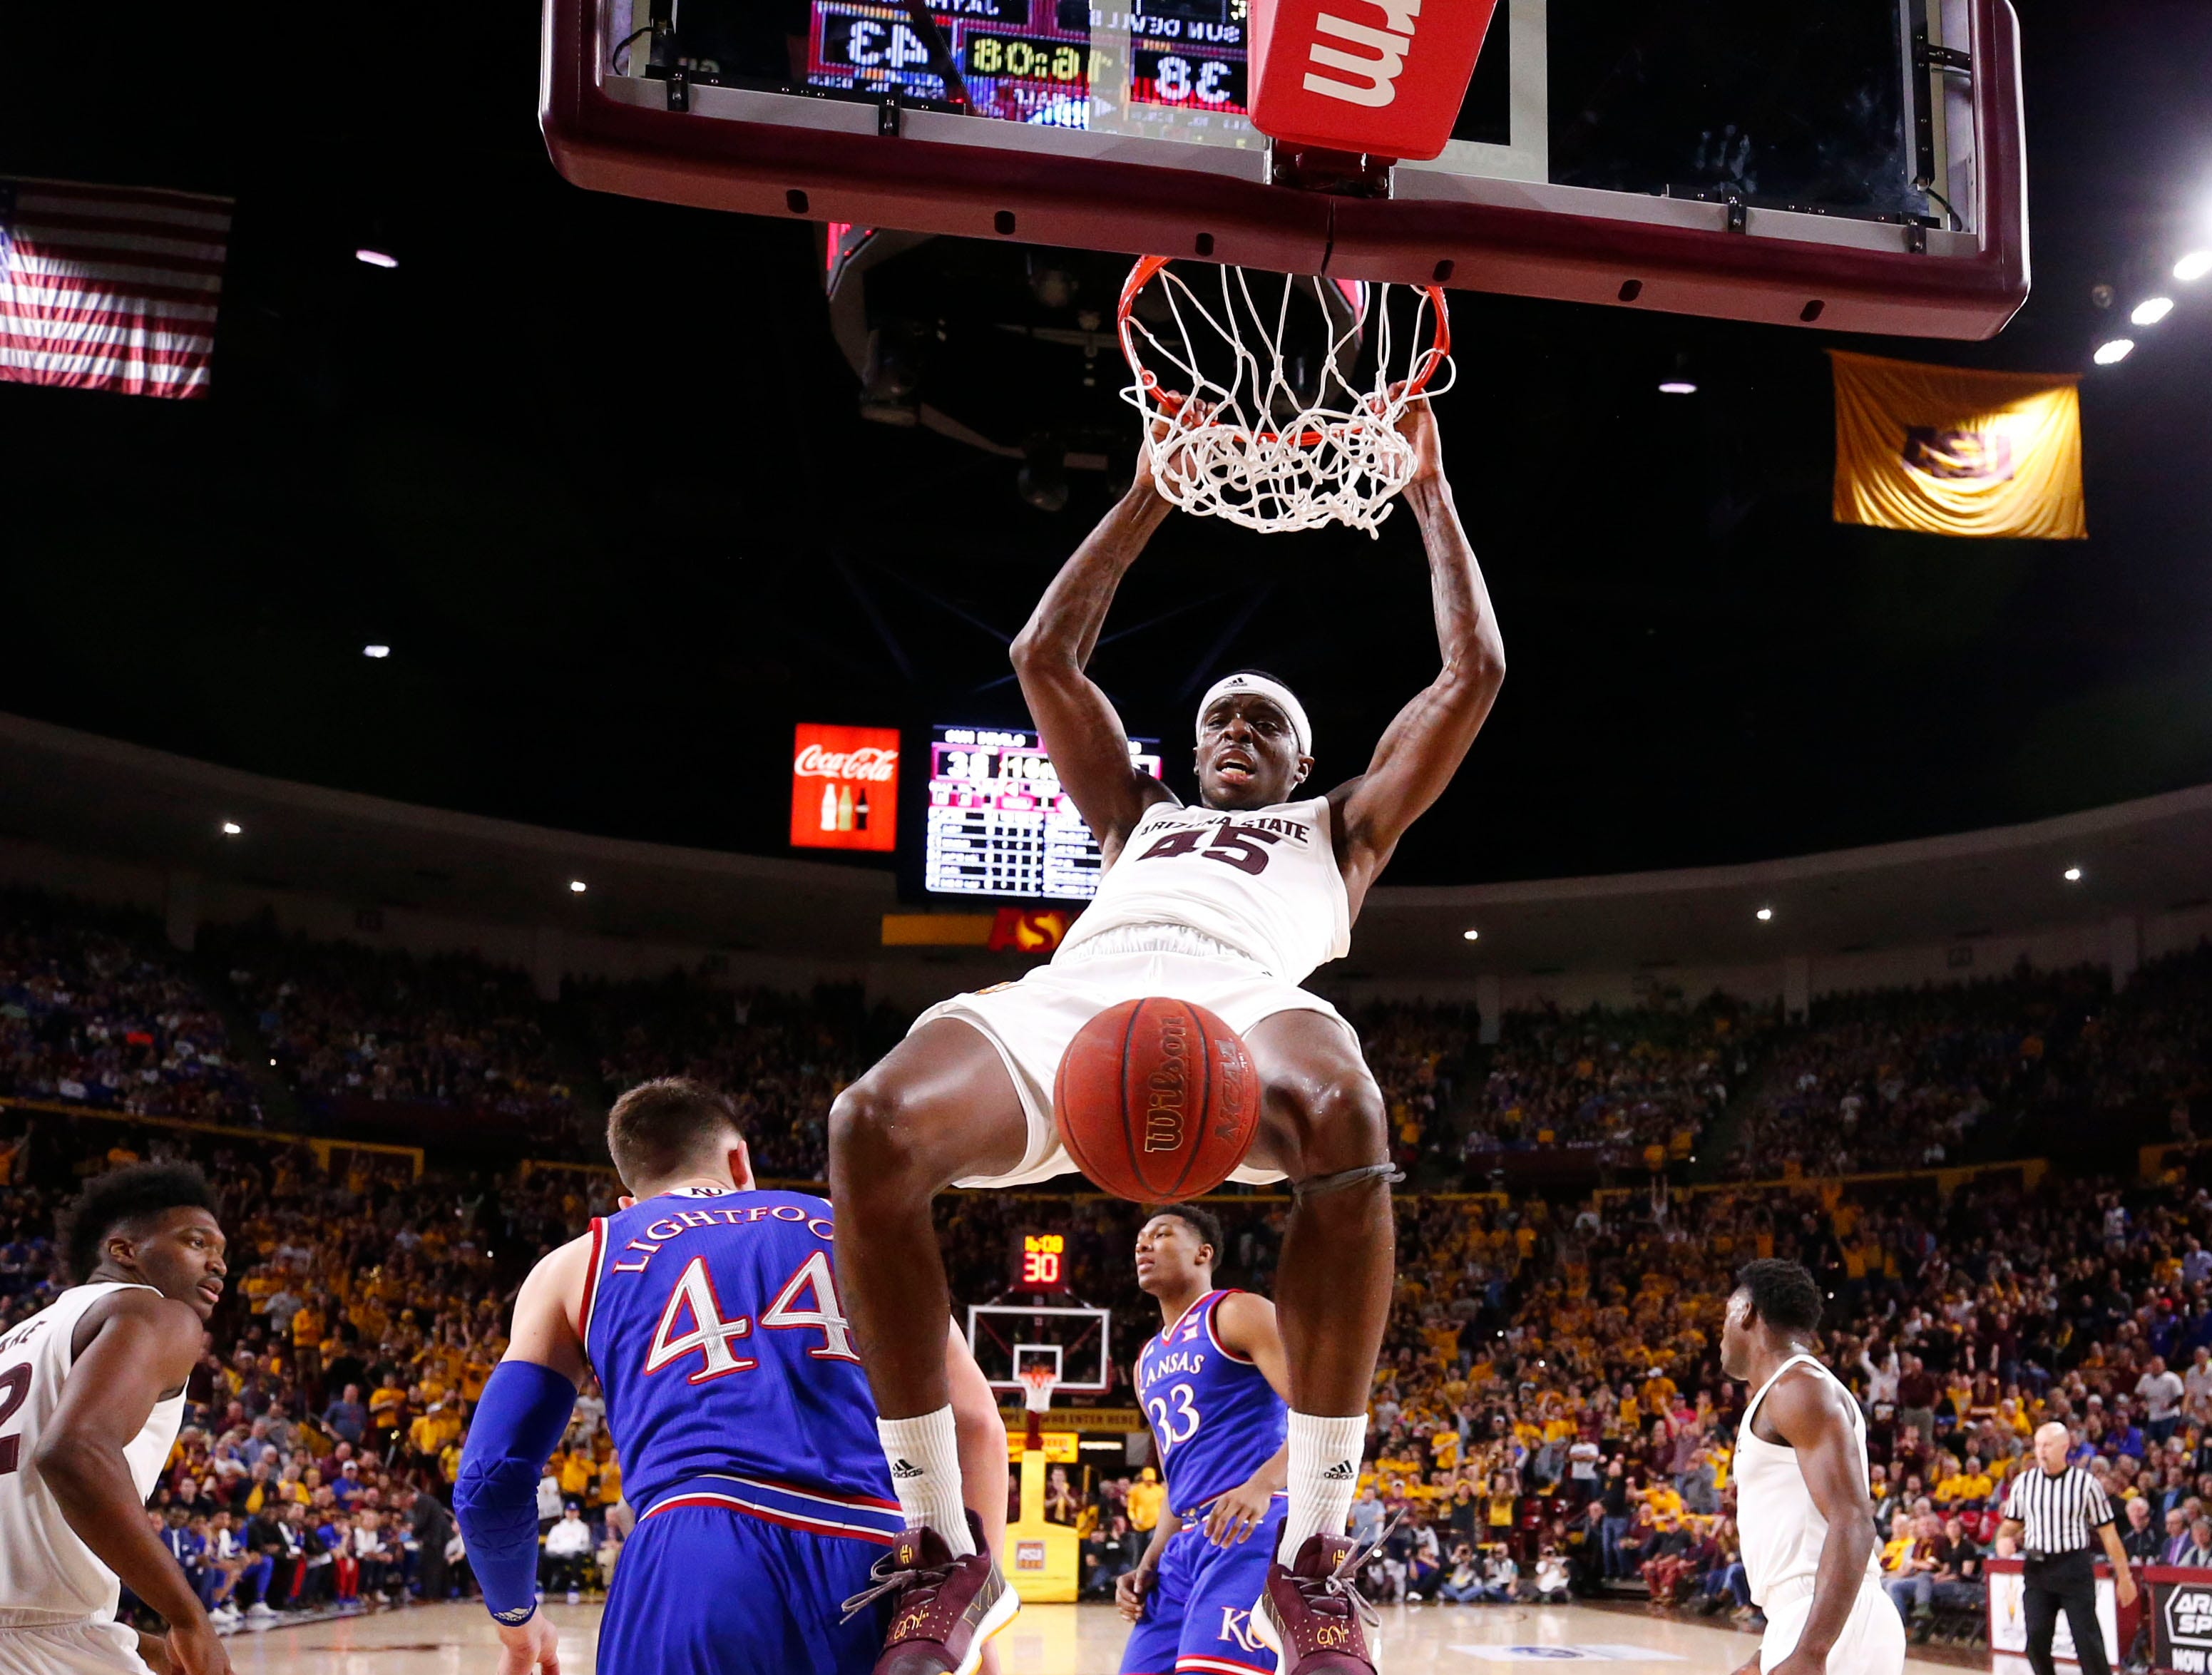 Arizona State forward Zylan Cheatham slam-dunks the ball against Kansas late in the second half on Dec. 22 at Wells Fargo Arena.